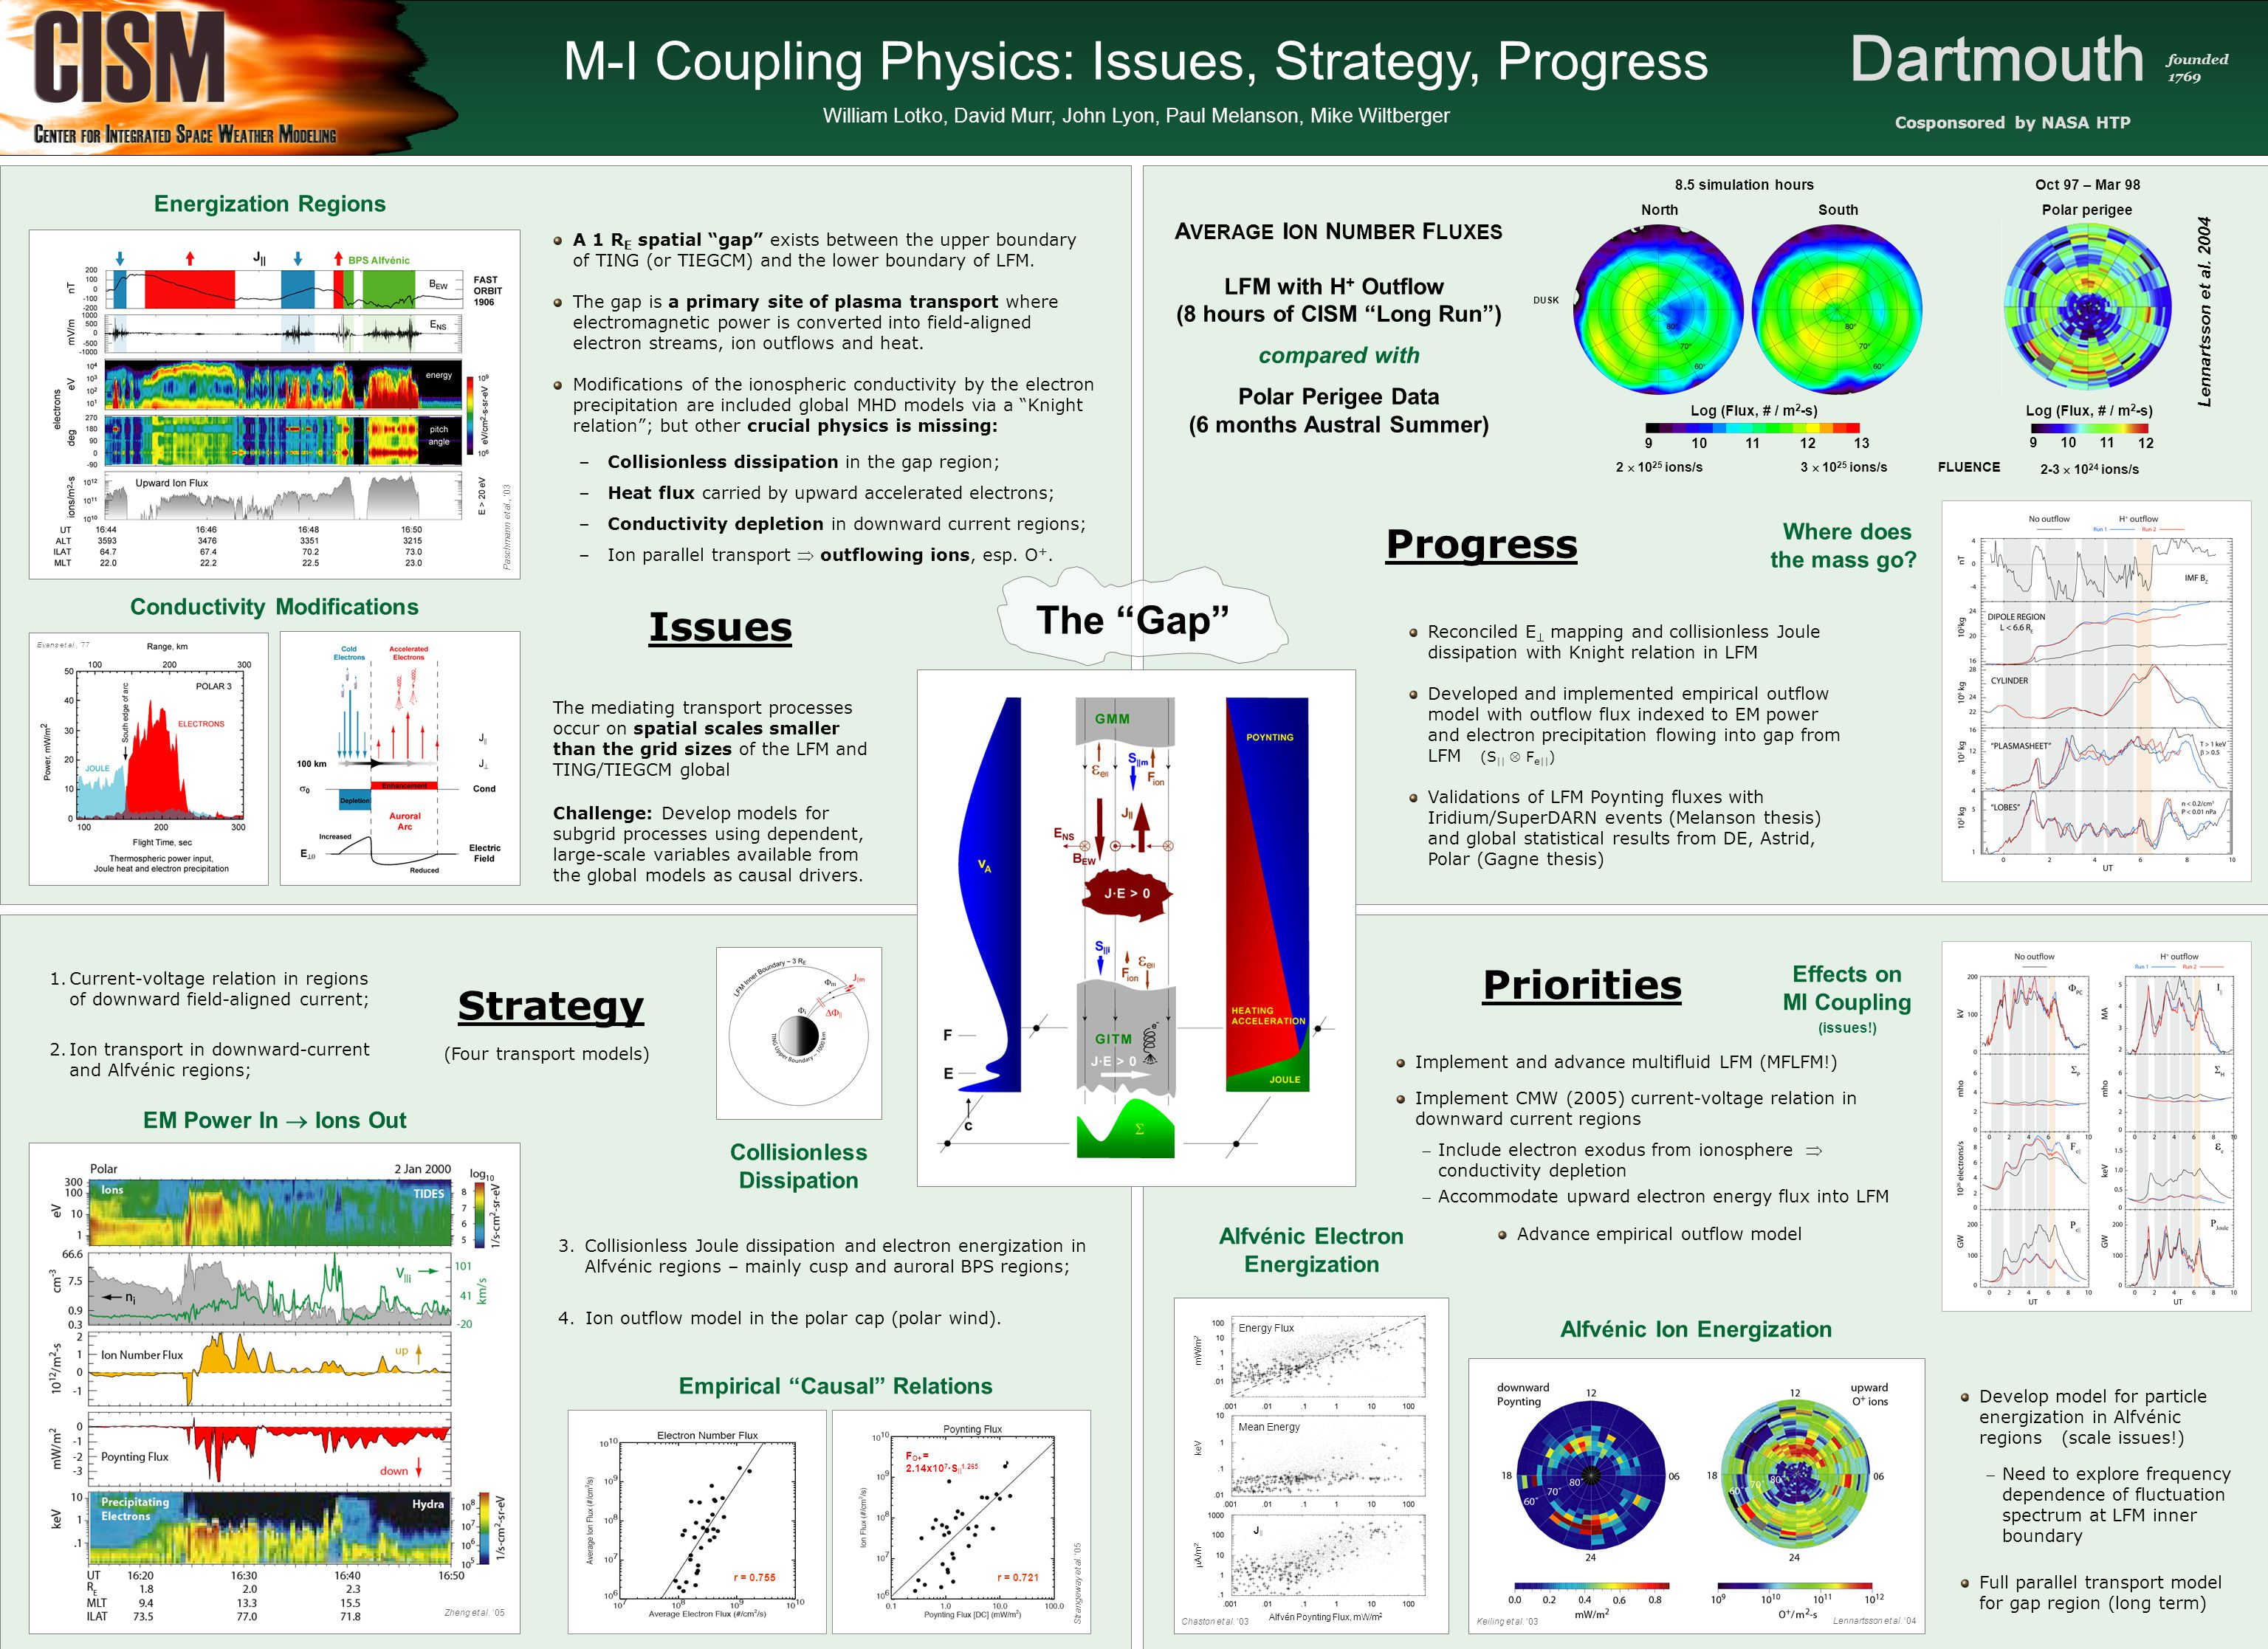 M-I Coupling Physics: Issues, Strategy, Progress William Lotko, David Murr, John Lyon, Paul Melanson, Mike Wiltberger The mediating transport processe